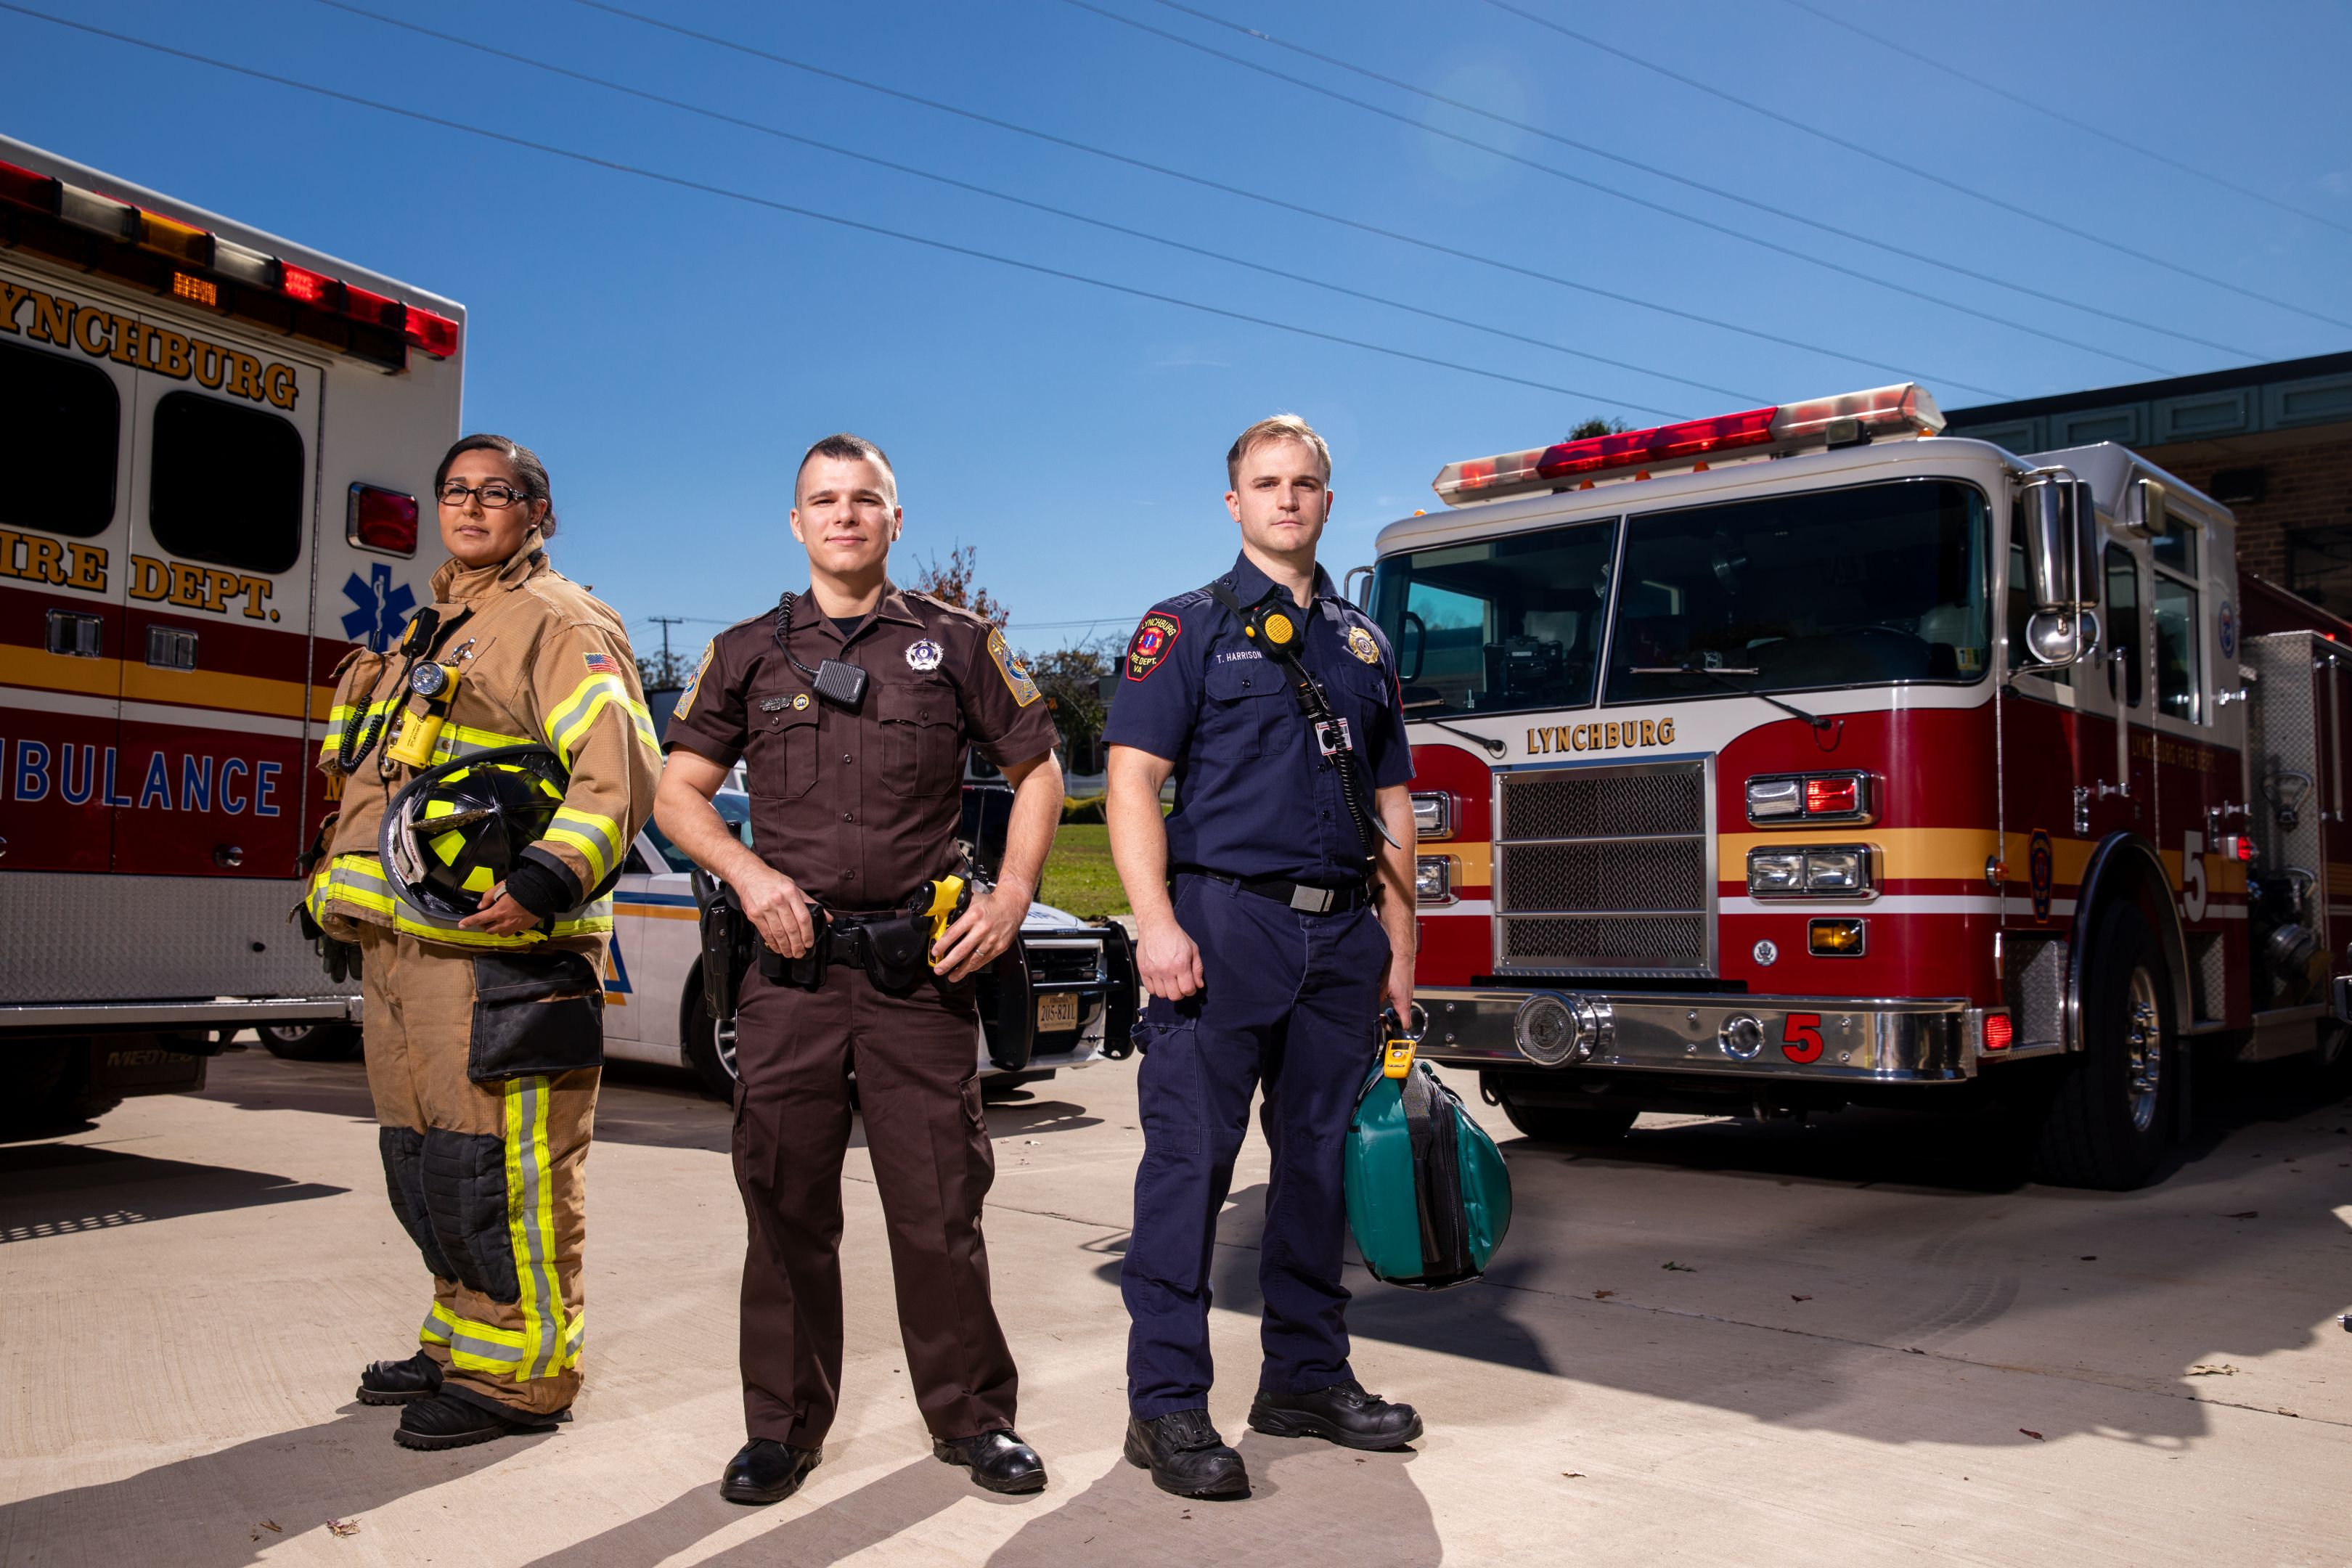 Photo of fire fighter and police officers